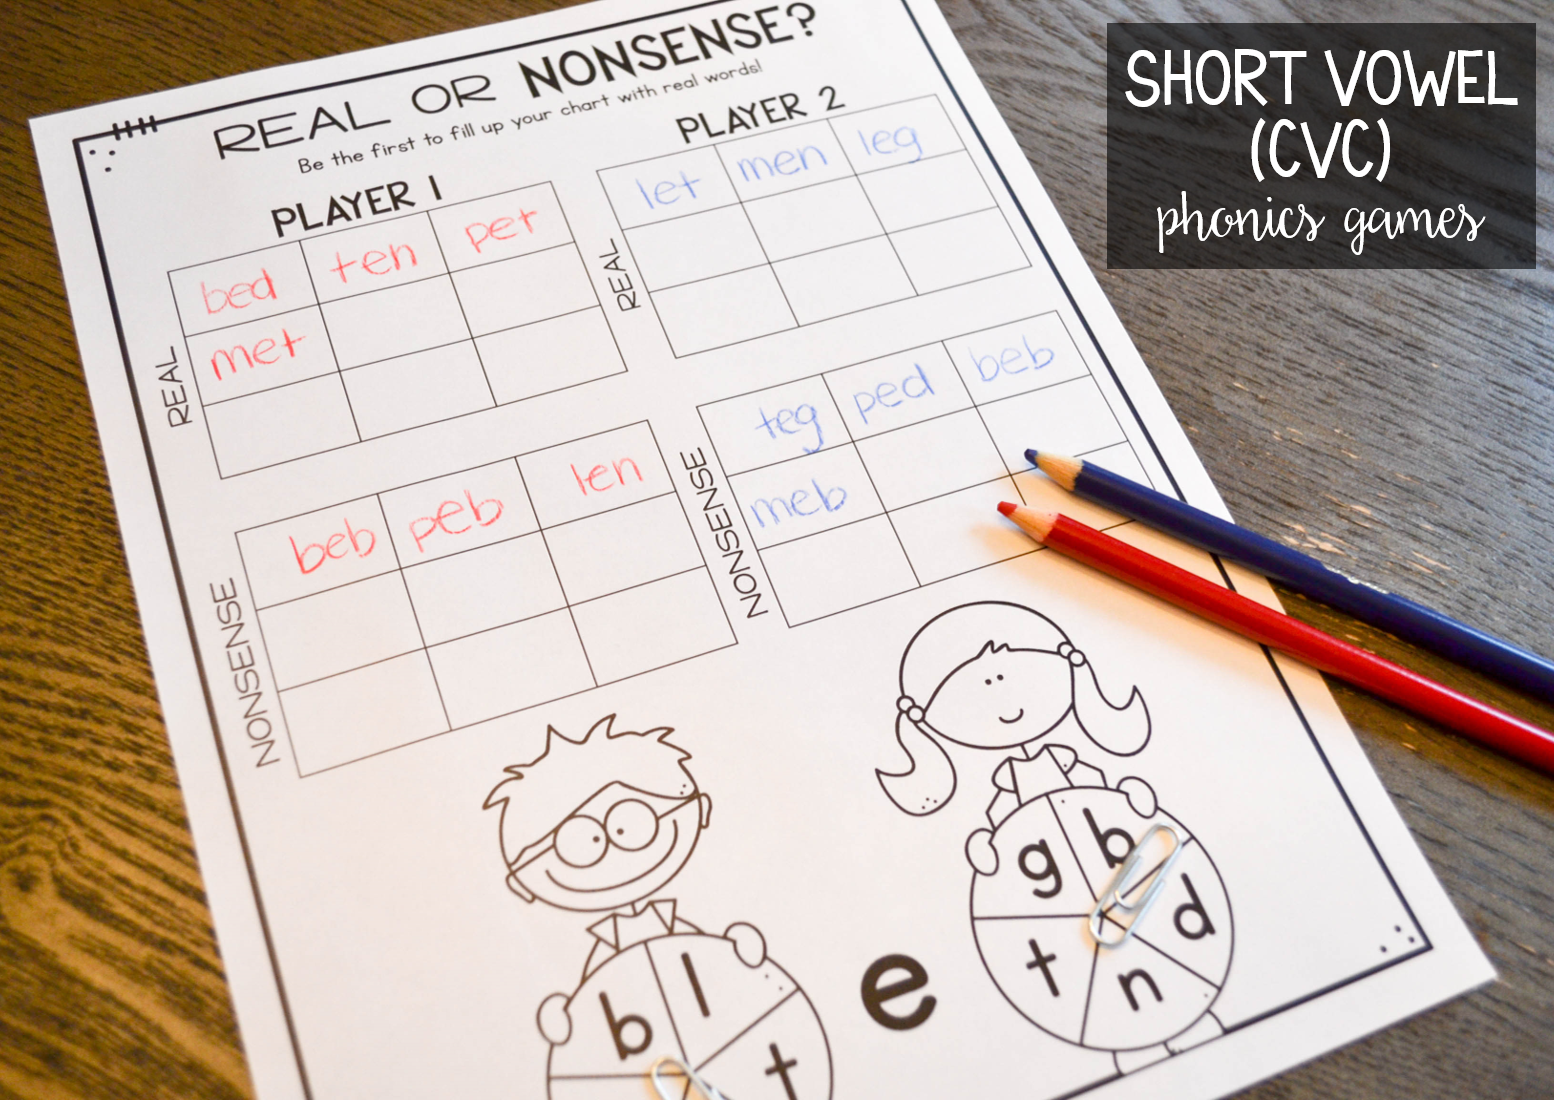 Short Vowel Cvc Phonics Games